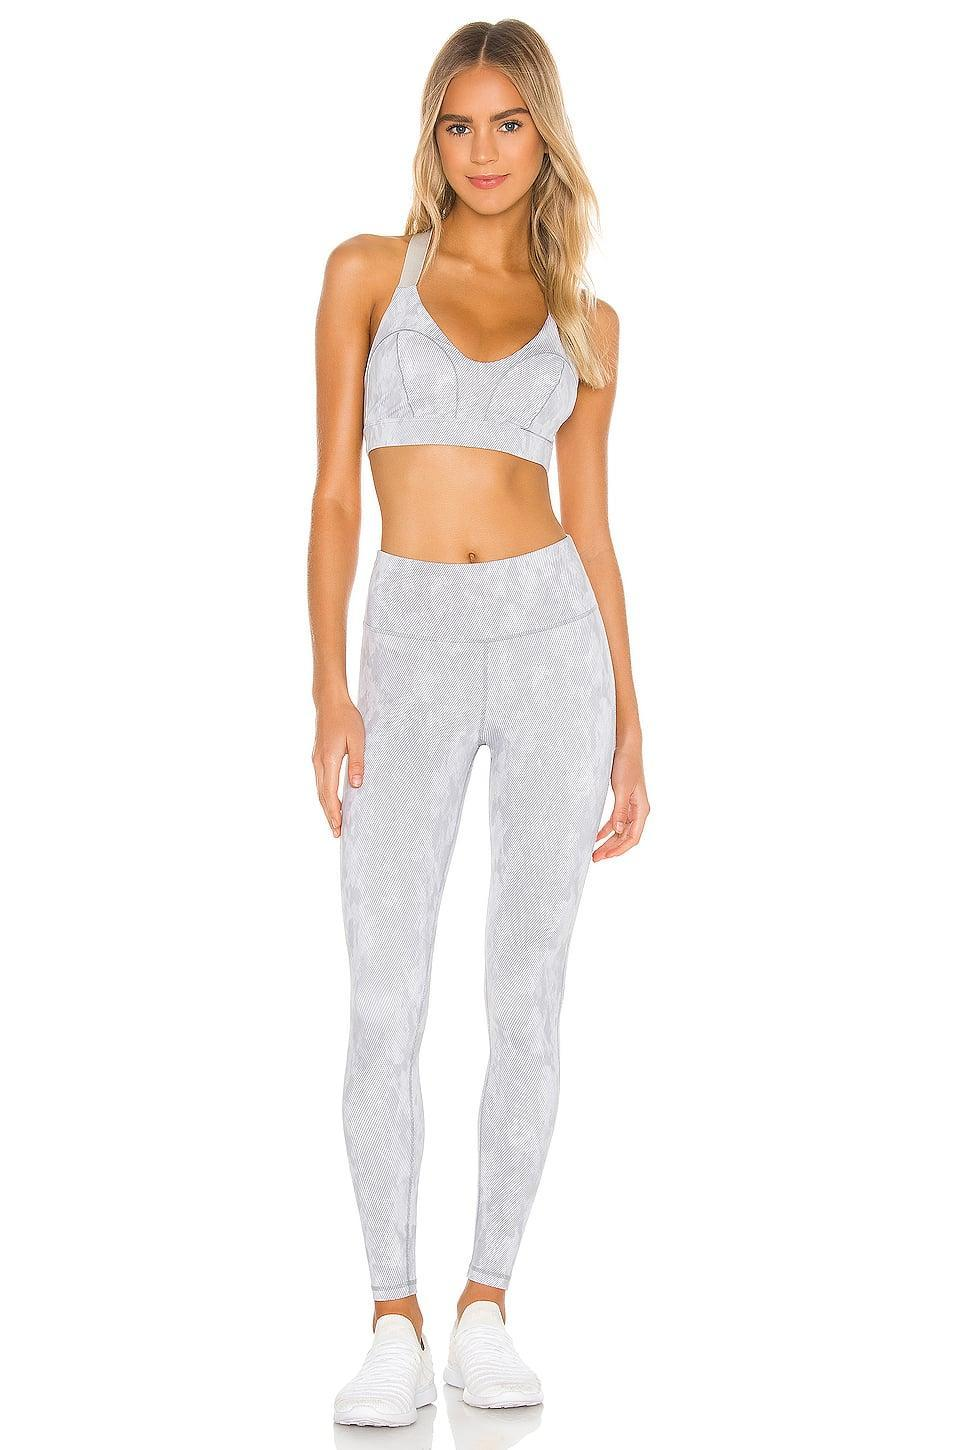 <p>This <span>Lilybod Zinnia Crop Sports Bra</span> ($58) and <span>High Waist Full Length Legging</span> ($82) is both cute and made to move in.</p>